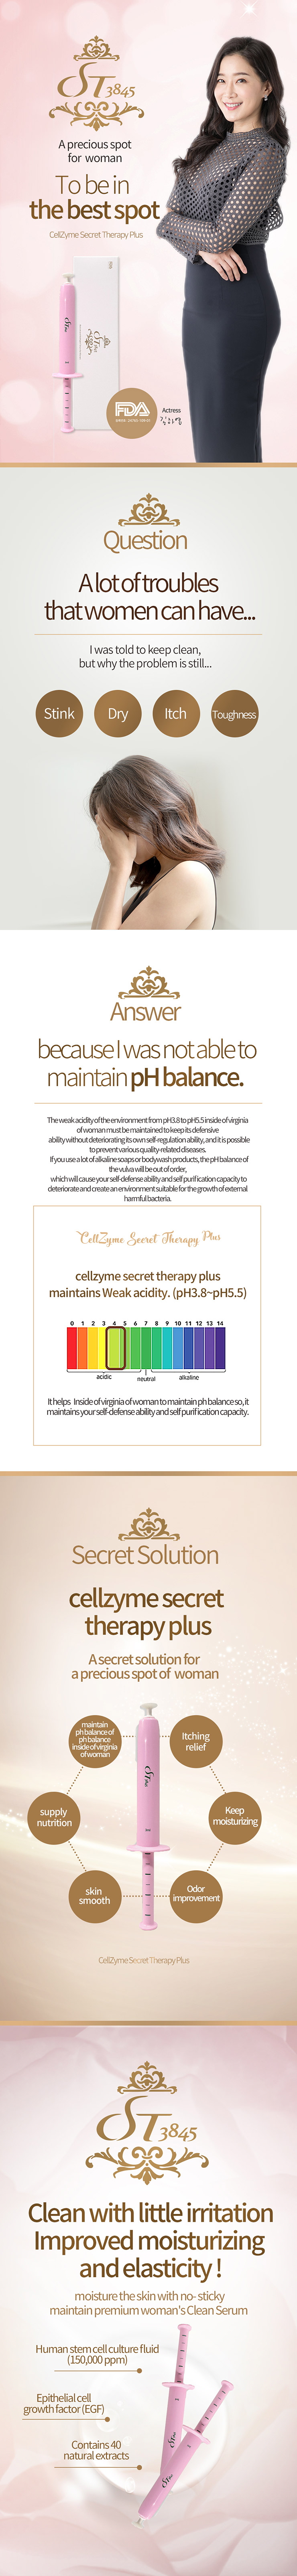 cellzyme secret therapy